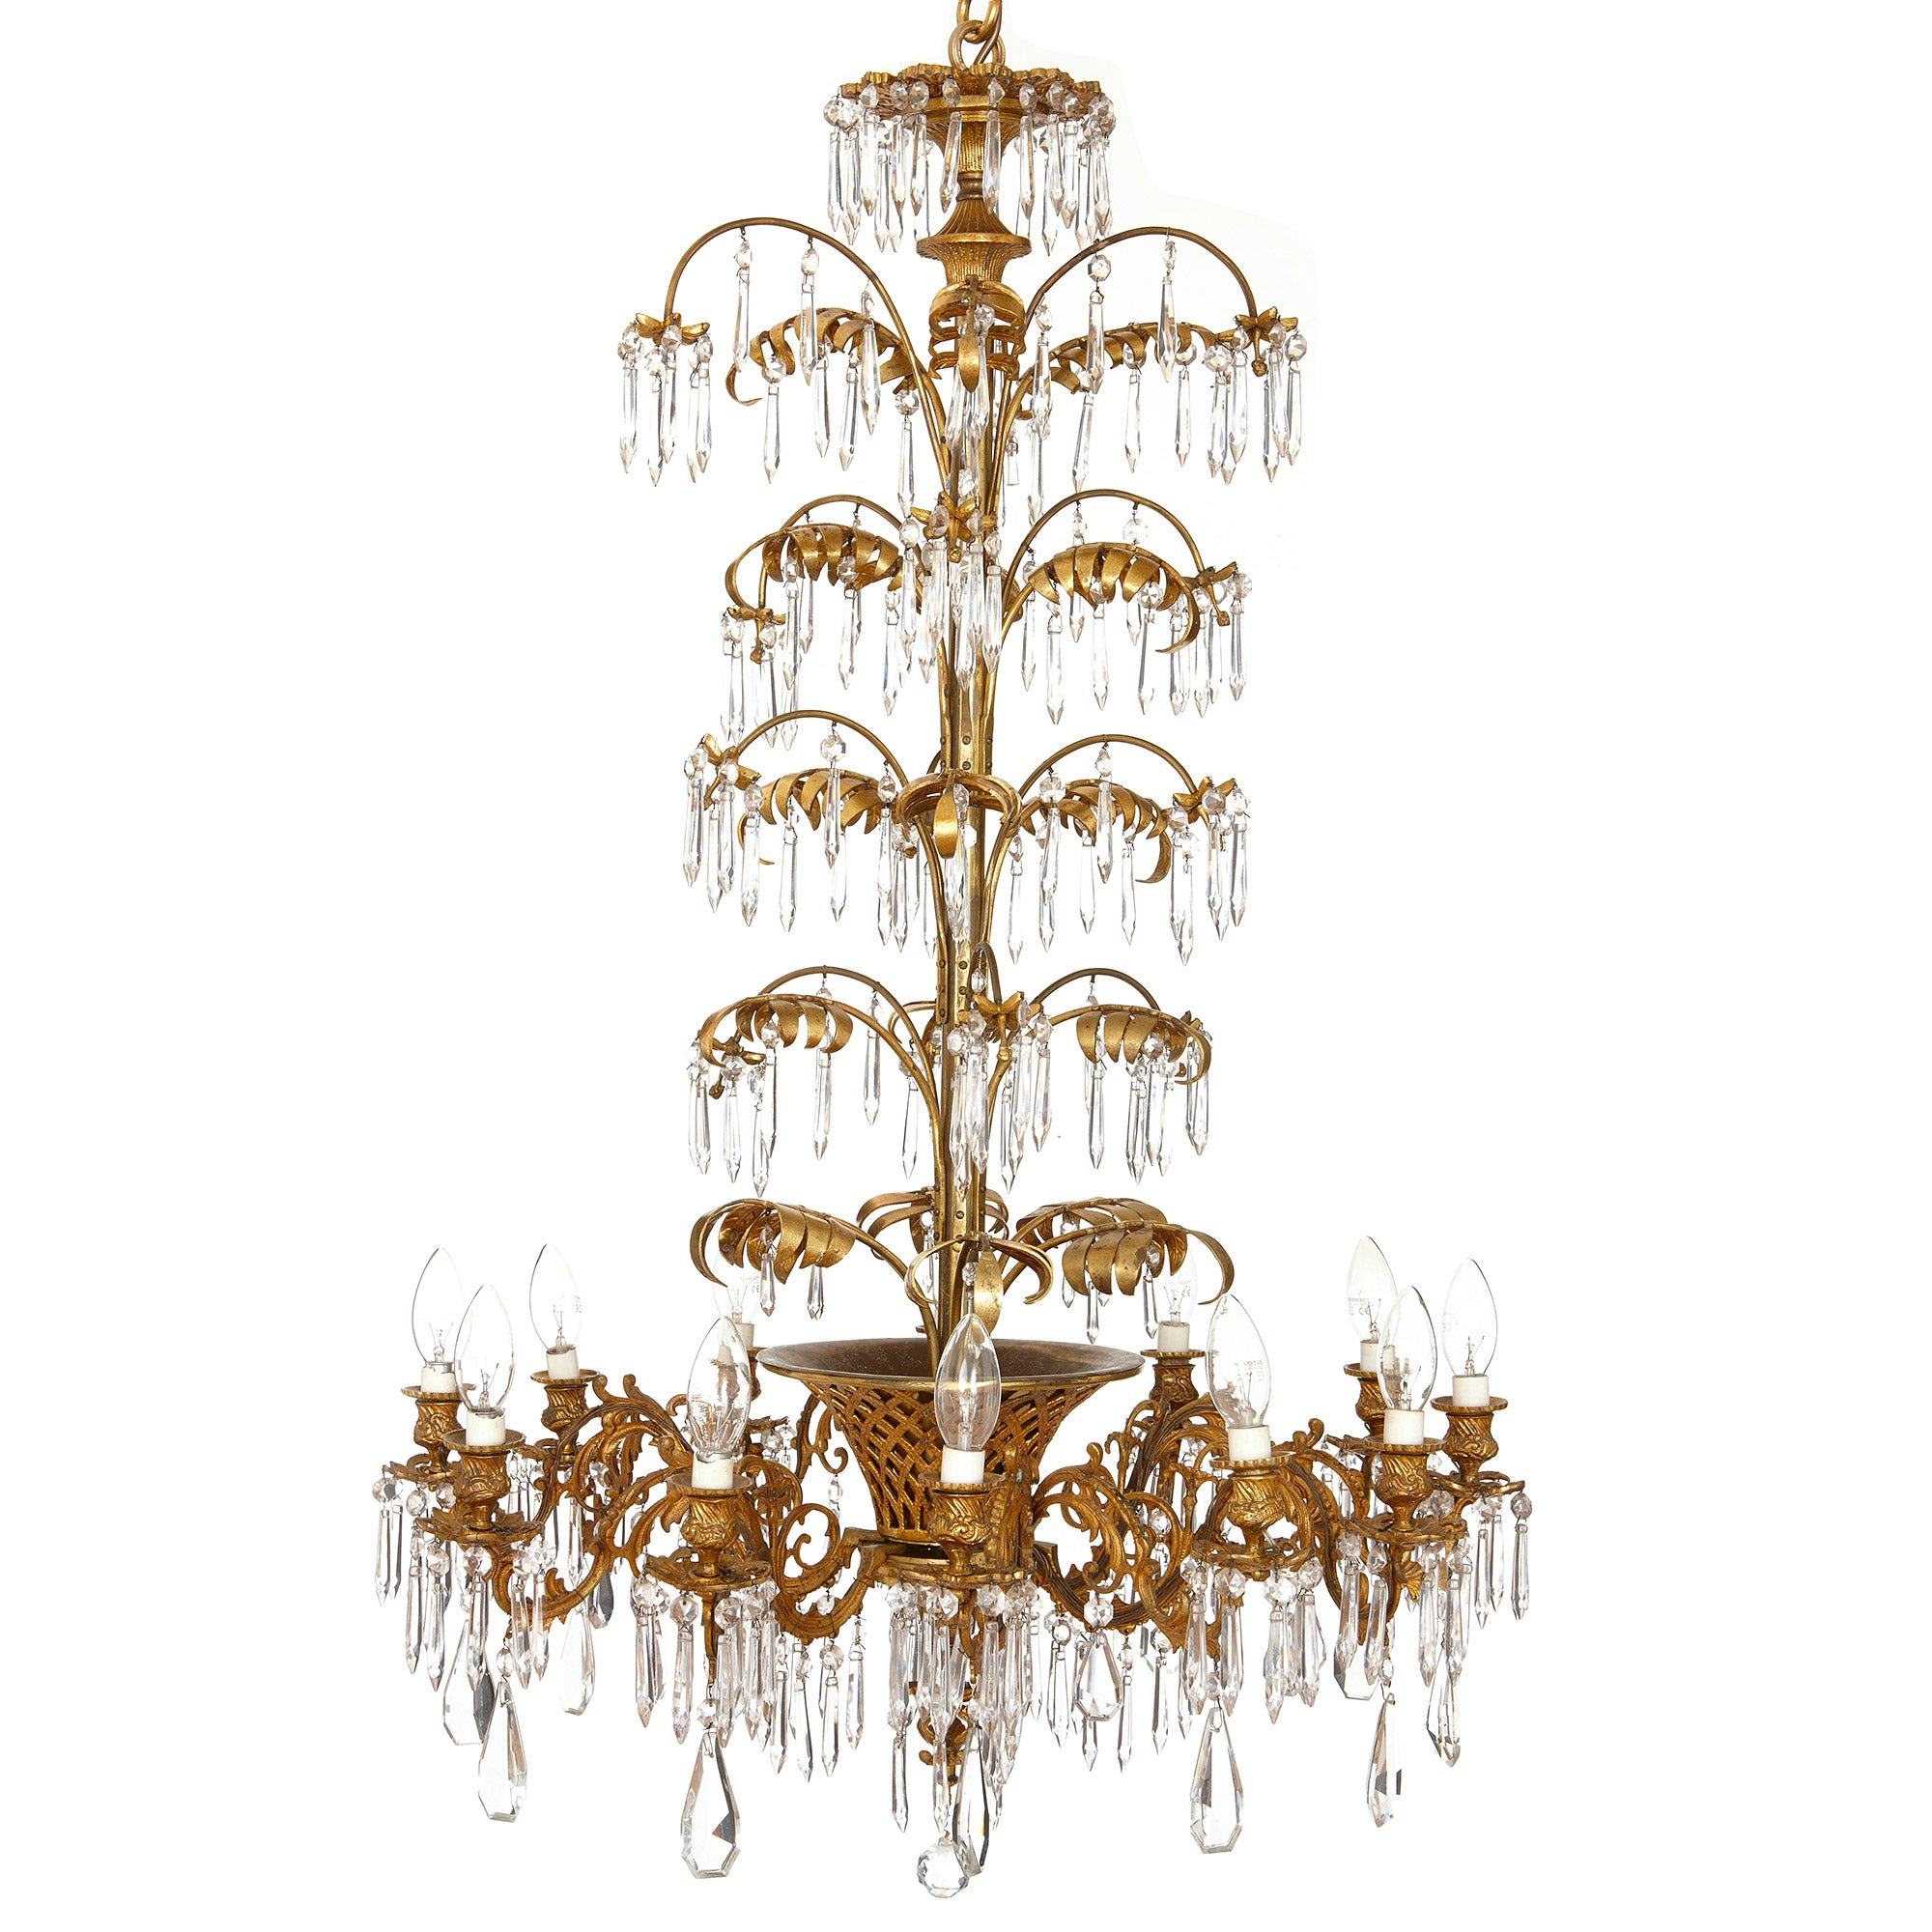 French Antique Belle Epoque Style Ormolu and Cut-Glass Twelve-Light Chandelier